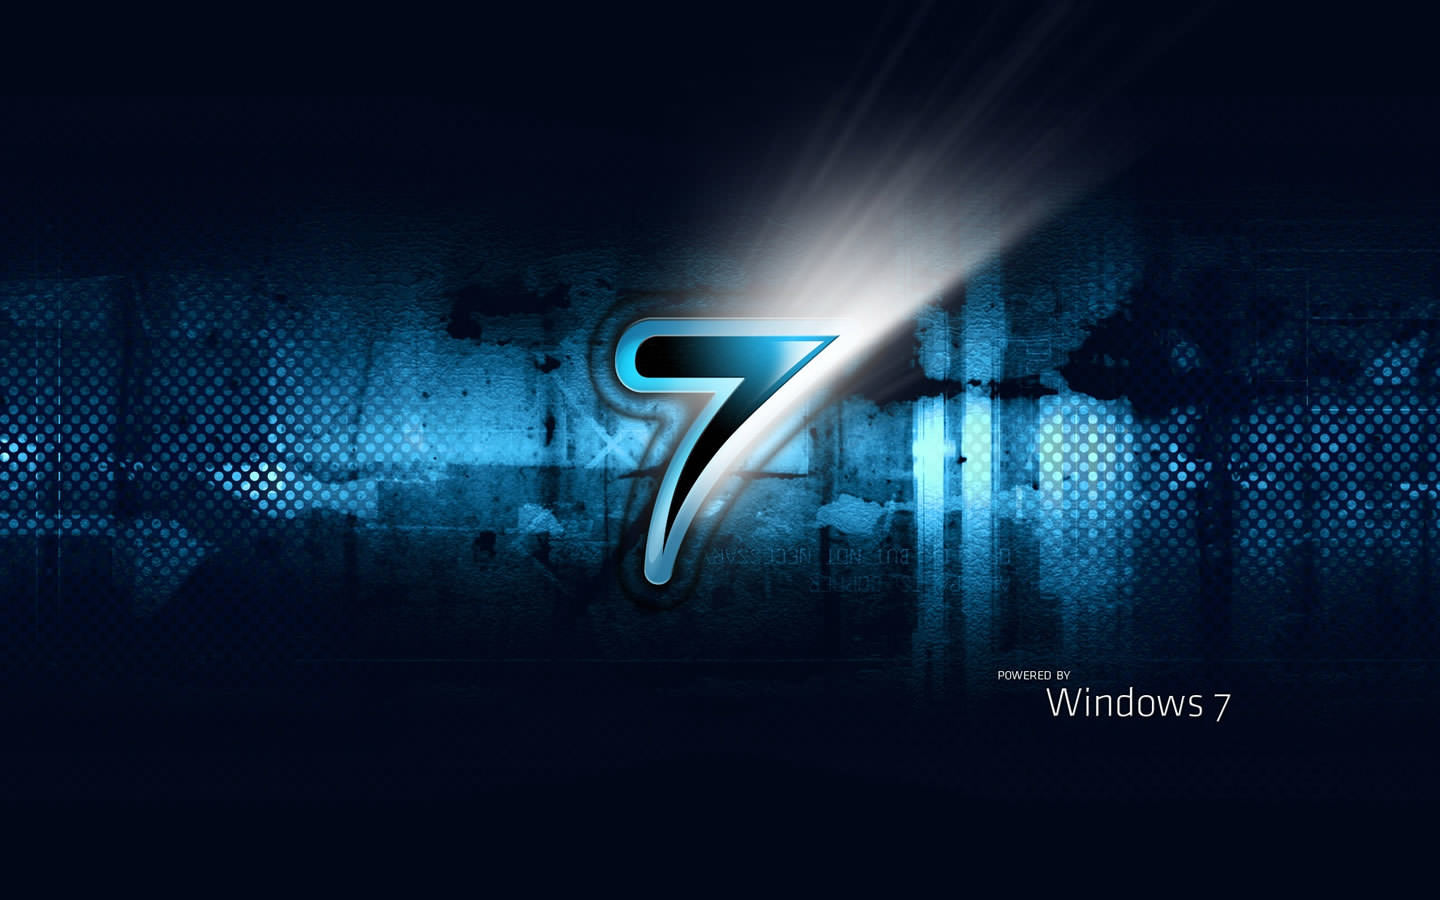 windows 7 wallpaper 1440x900 -#main